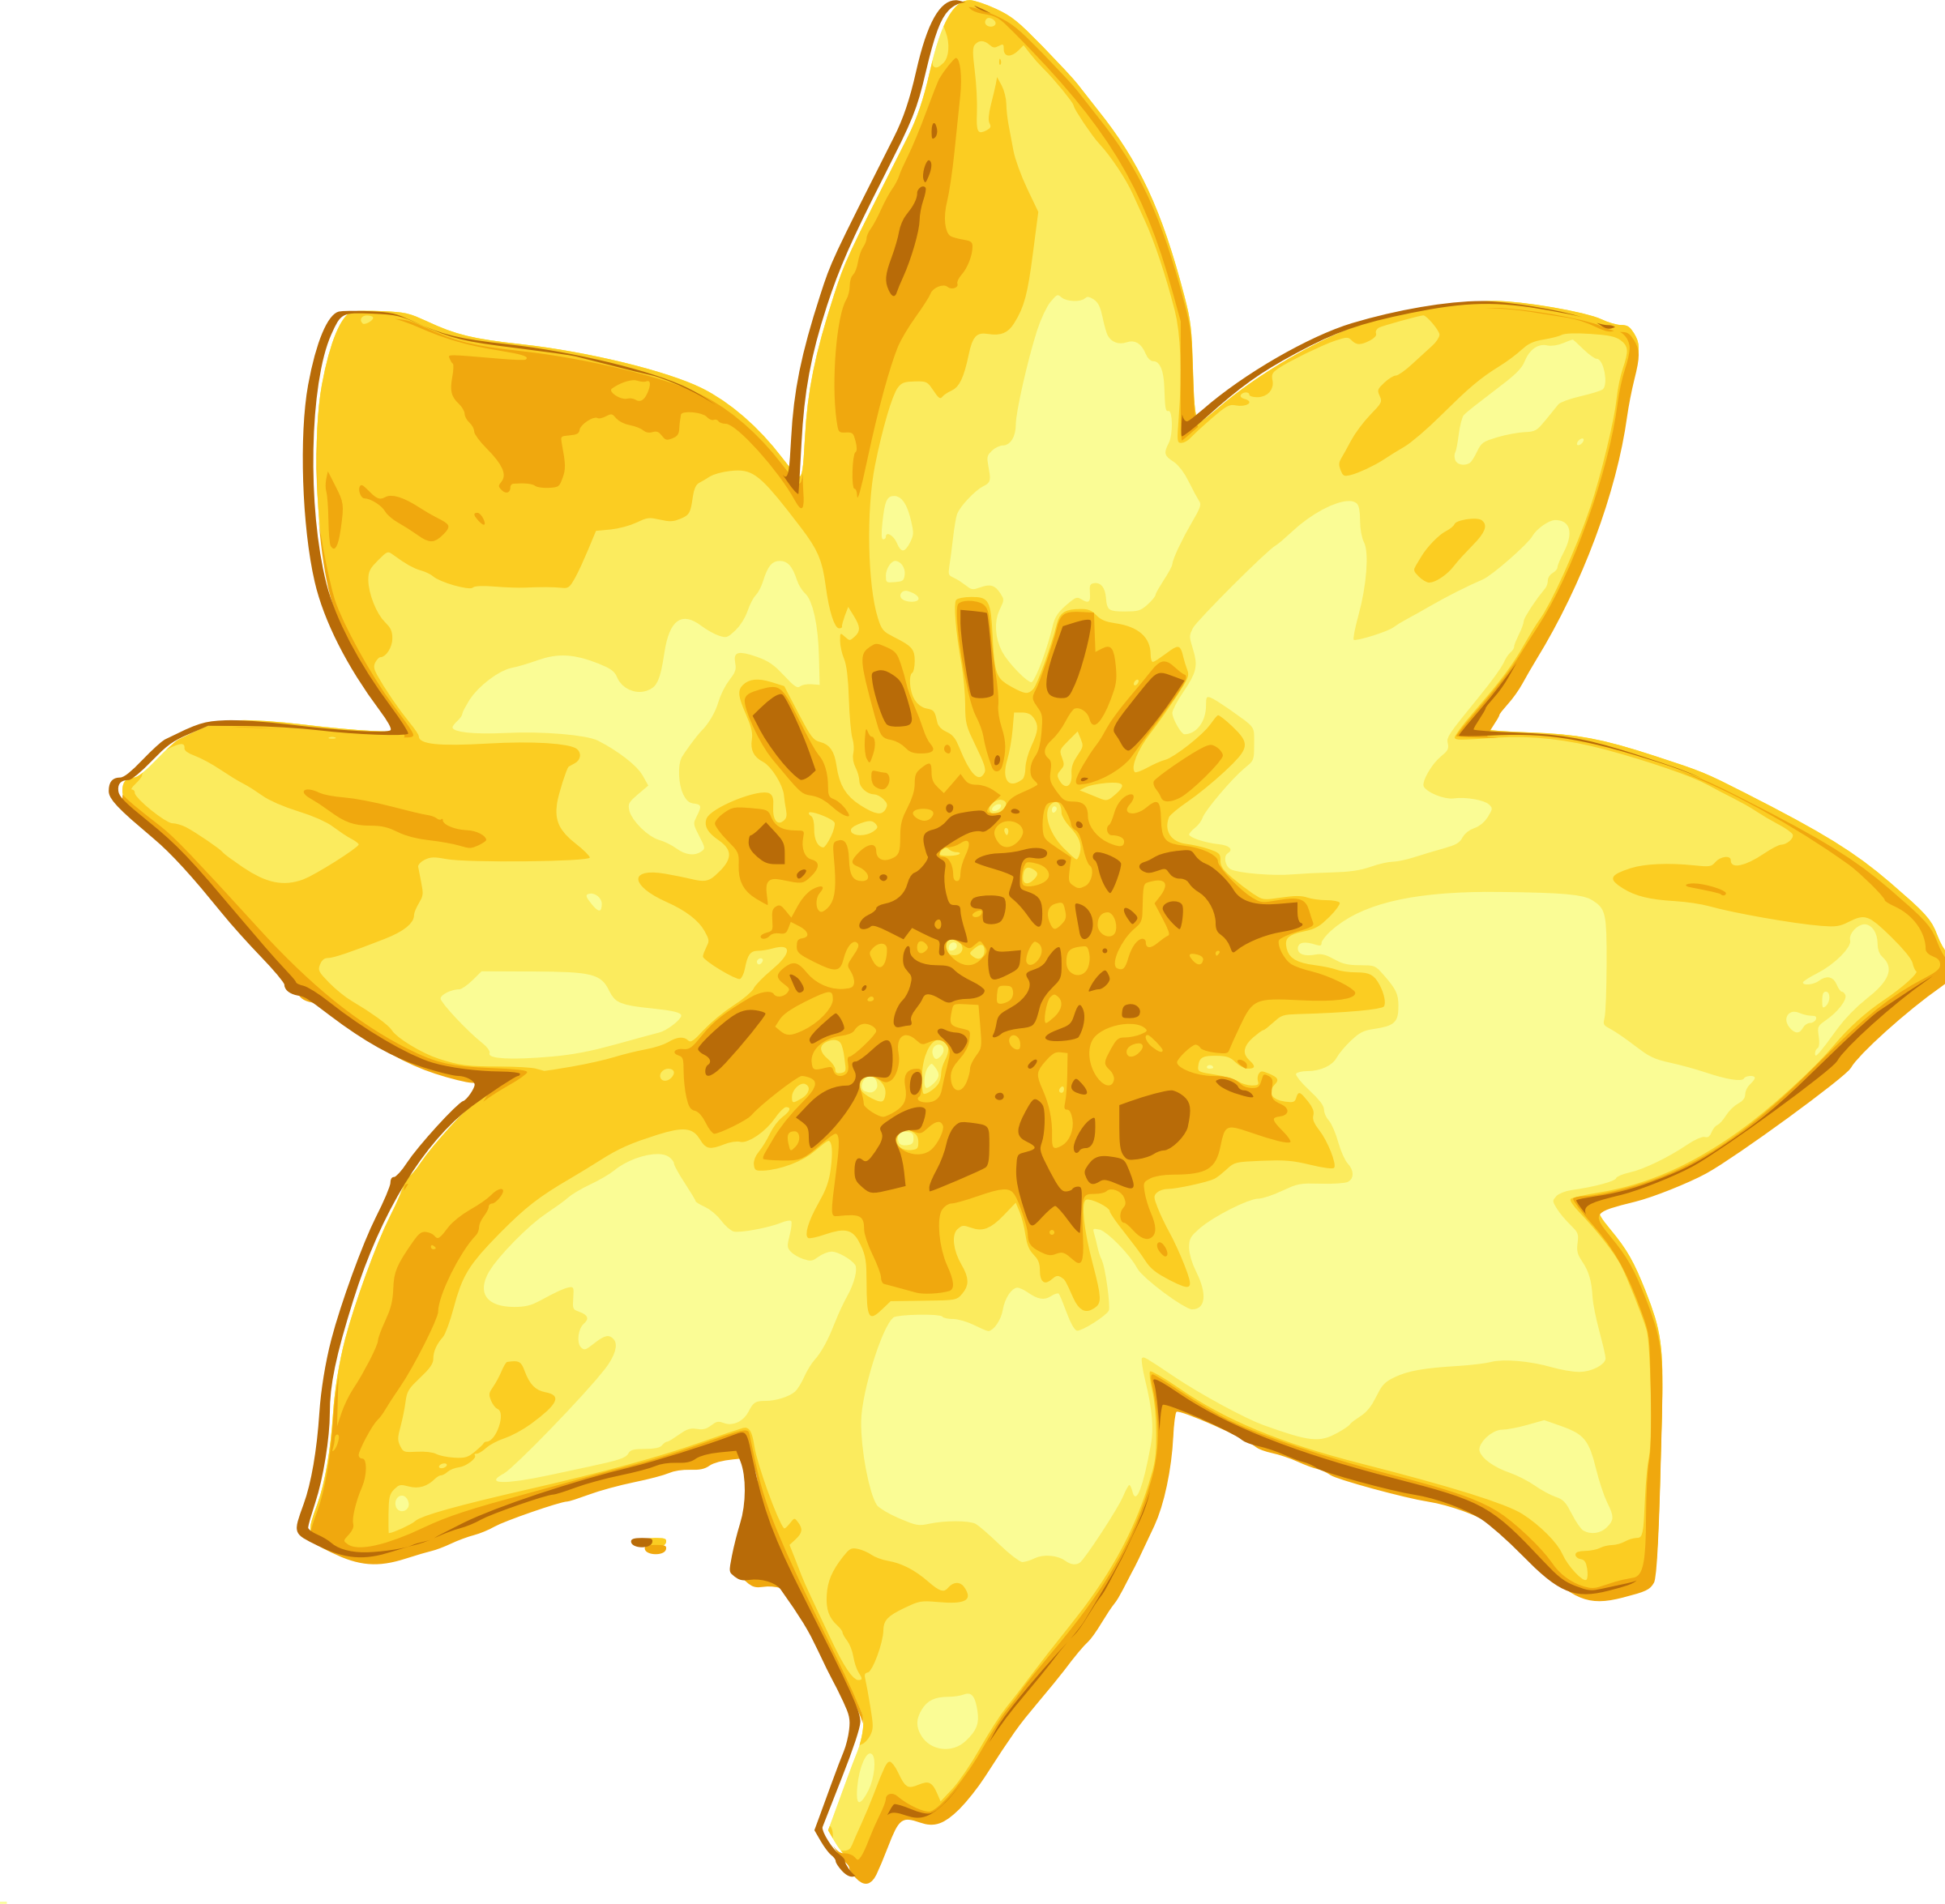 Meskel big image png. Daisy clipart wildflower